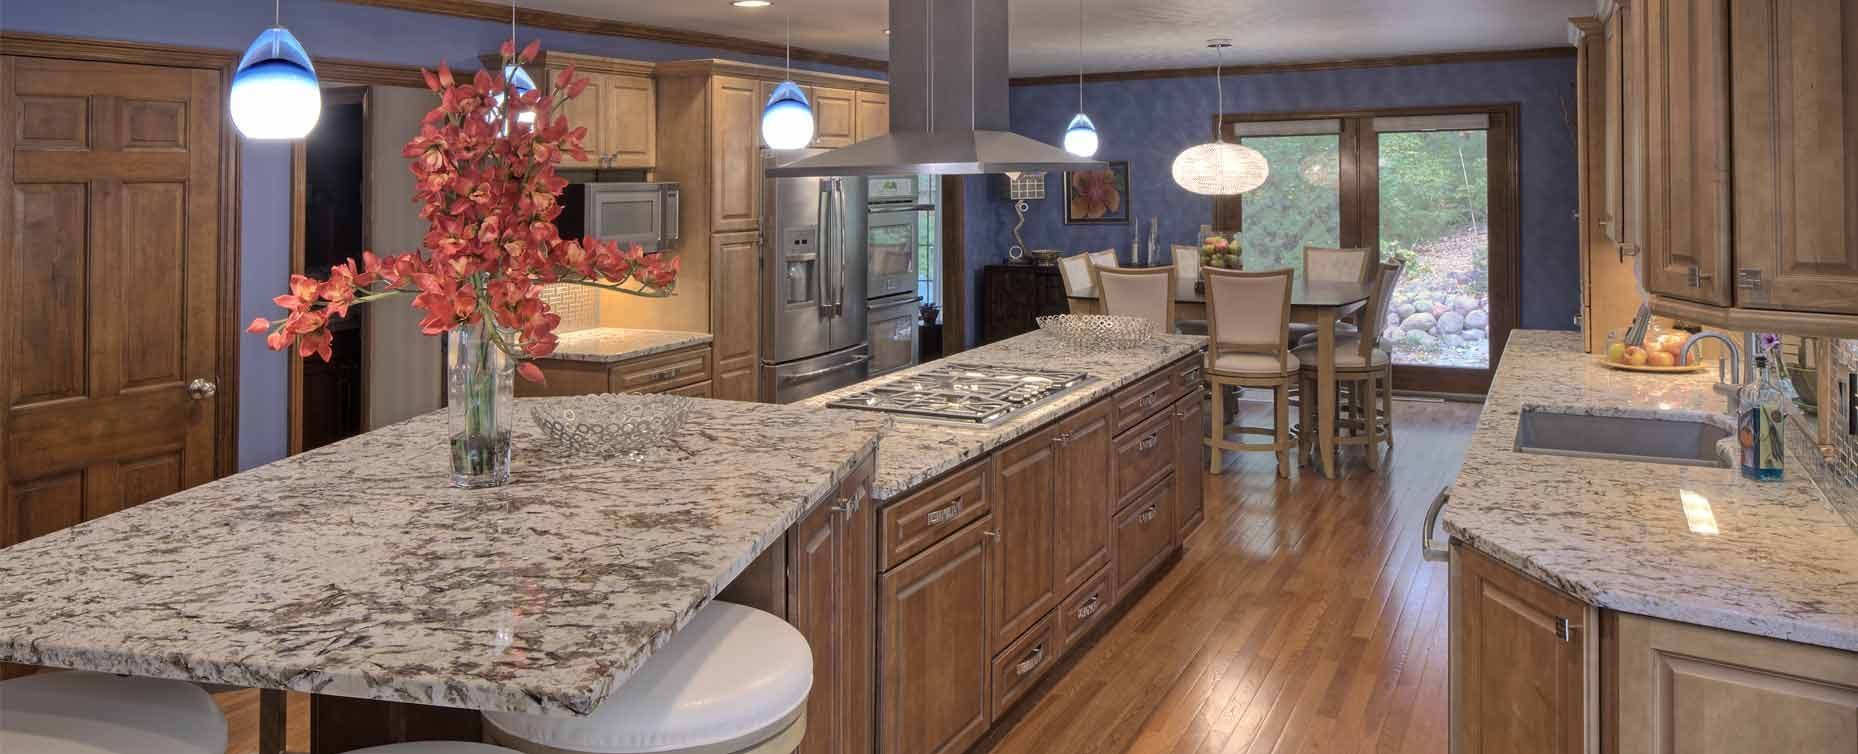 kitchen remodeling lake country